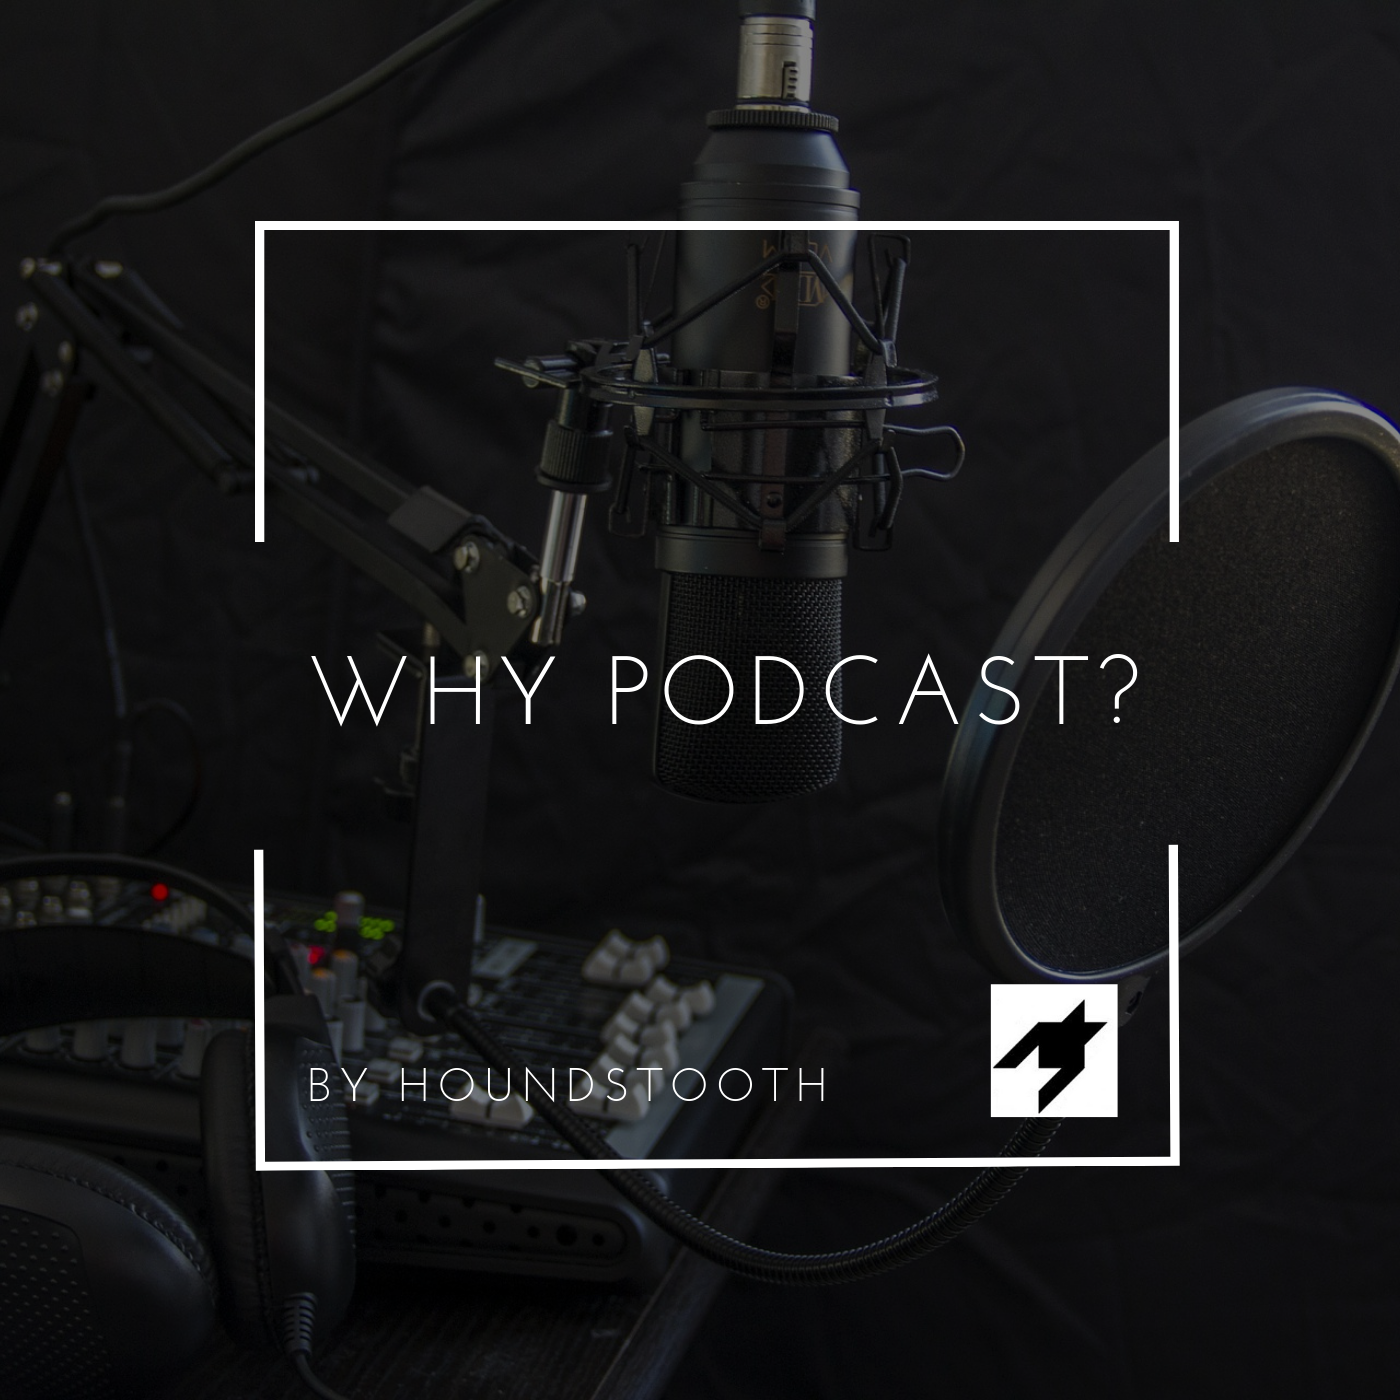 EP 1: Intro Episode - Why Podcast? show art